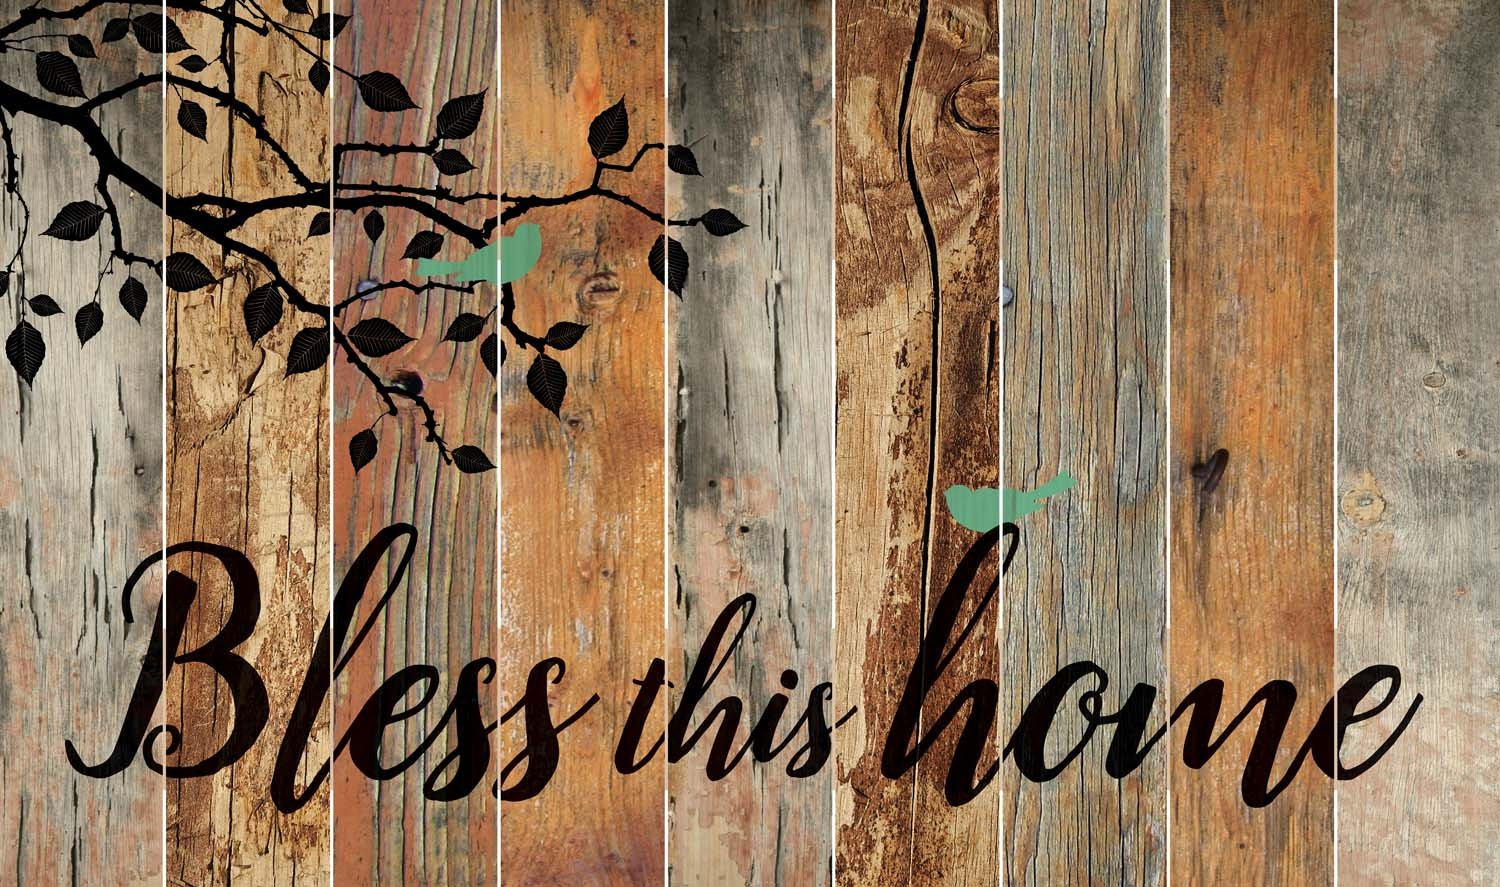 Bless this Home Bird Leaves Silhouette 28 x 47 Wood Large Barn Board Wall Art Sign Plaque